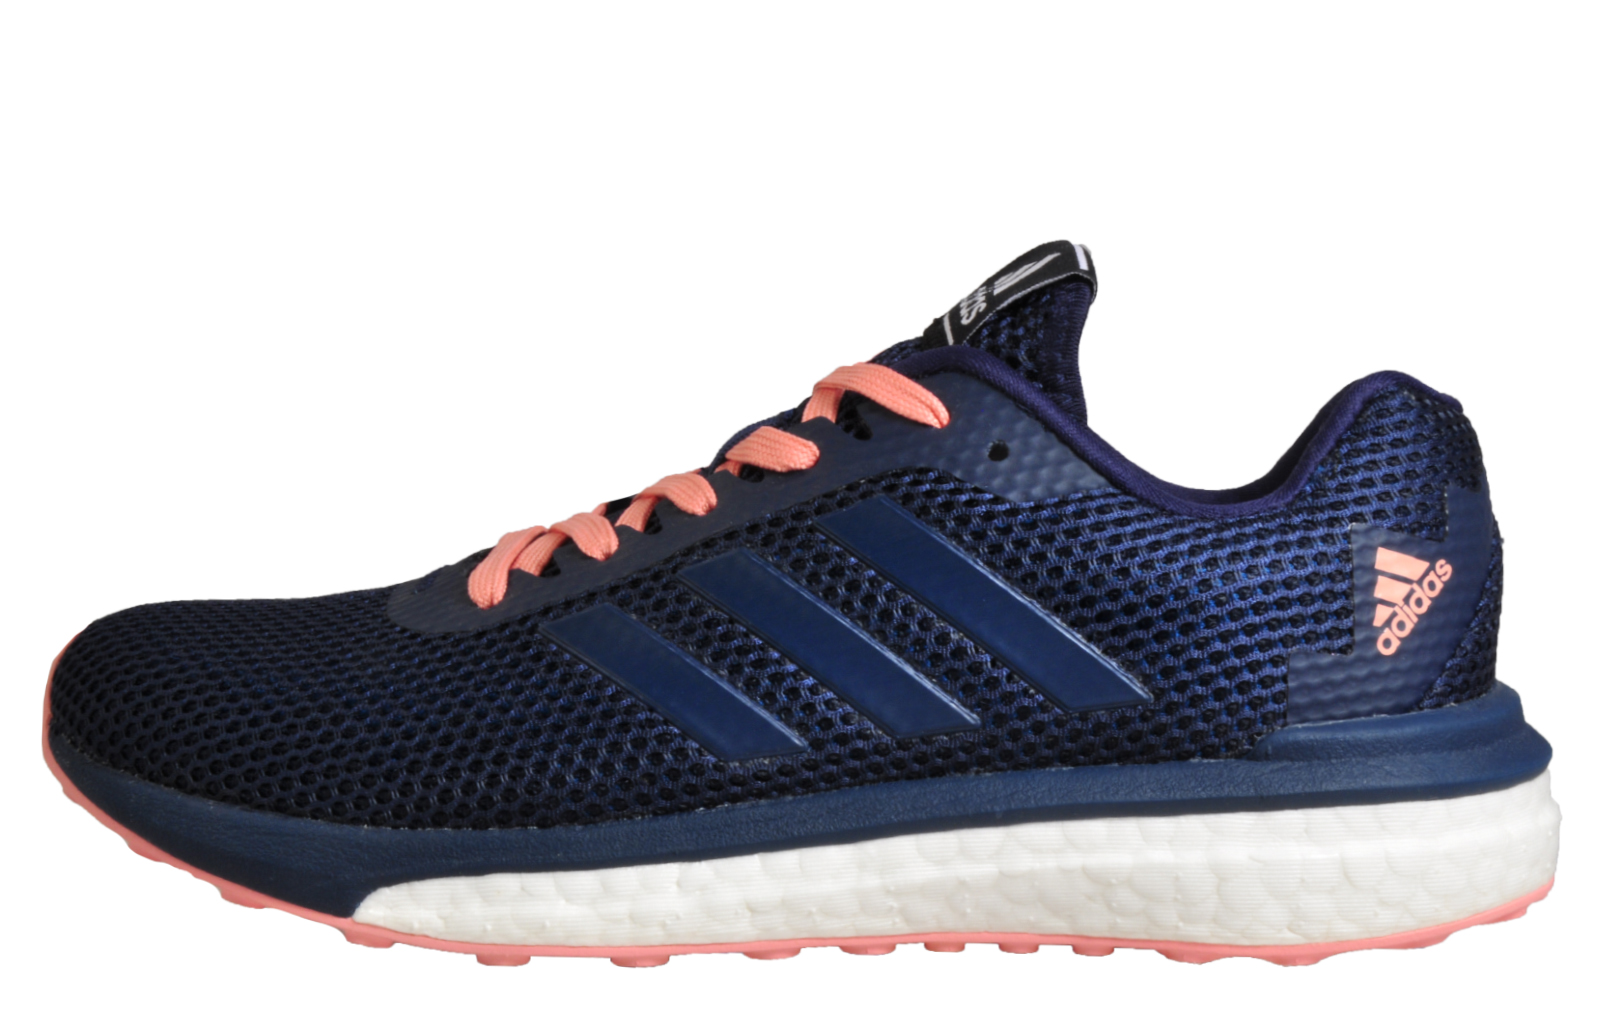 ... competitive price 9bb27 654a3 Adidas Vengeful Boost Women s Running  Shoes Fitness Gym Workout Trainers Navy ... 360d6eb4a92